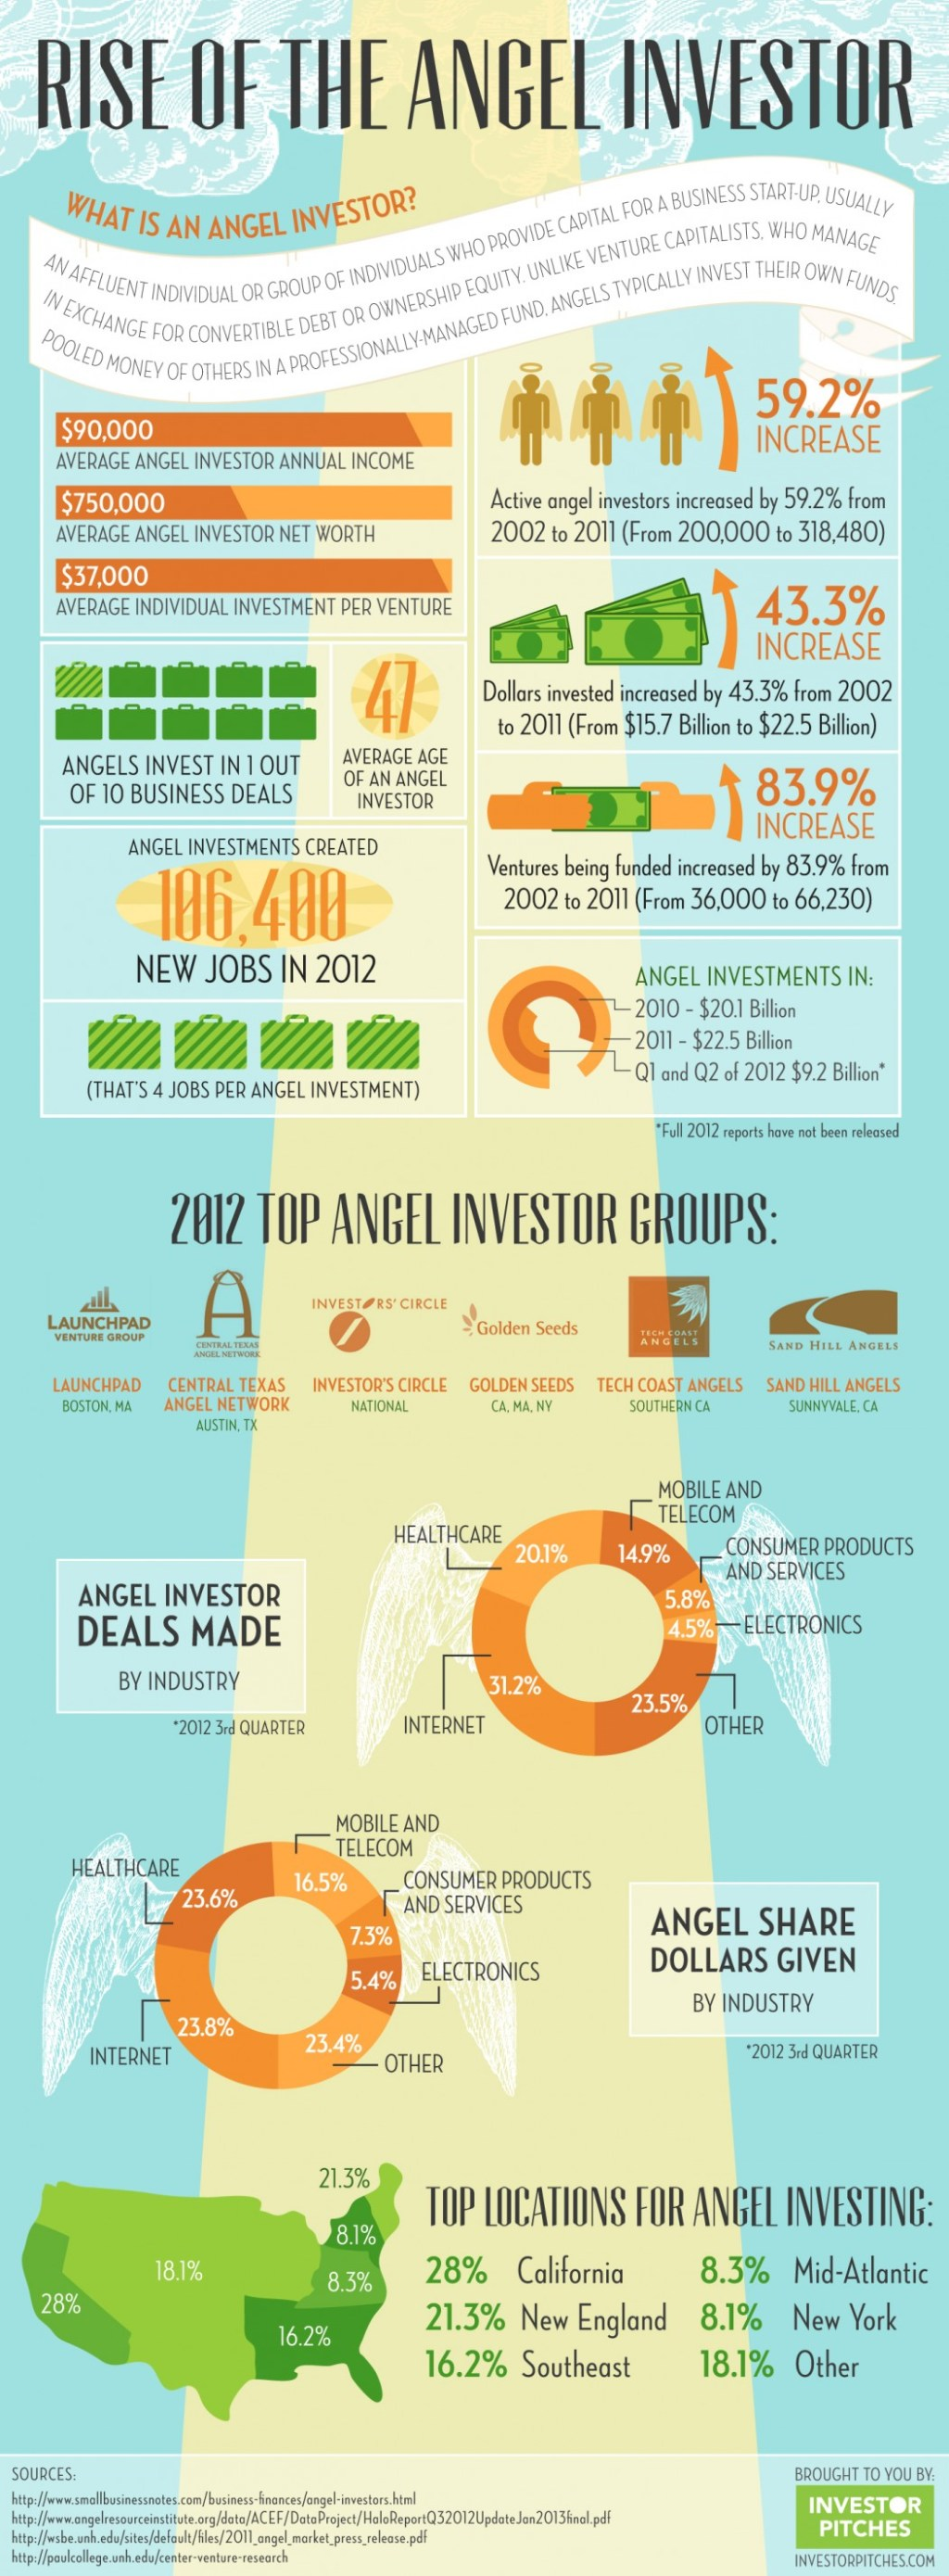 rise-of-the-angel-investor_5123ba1c3257a_w1052